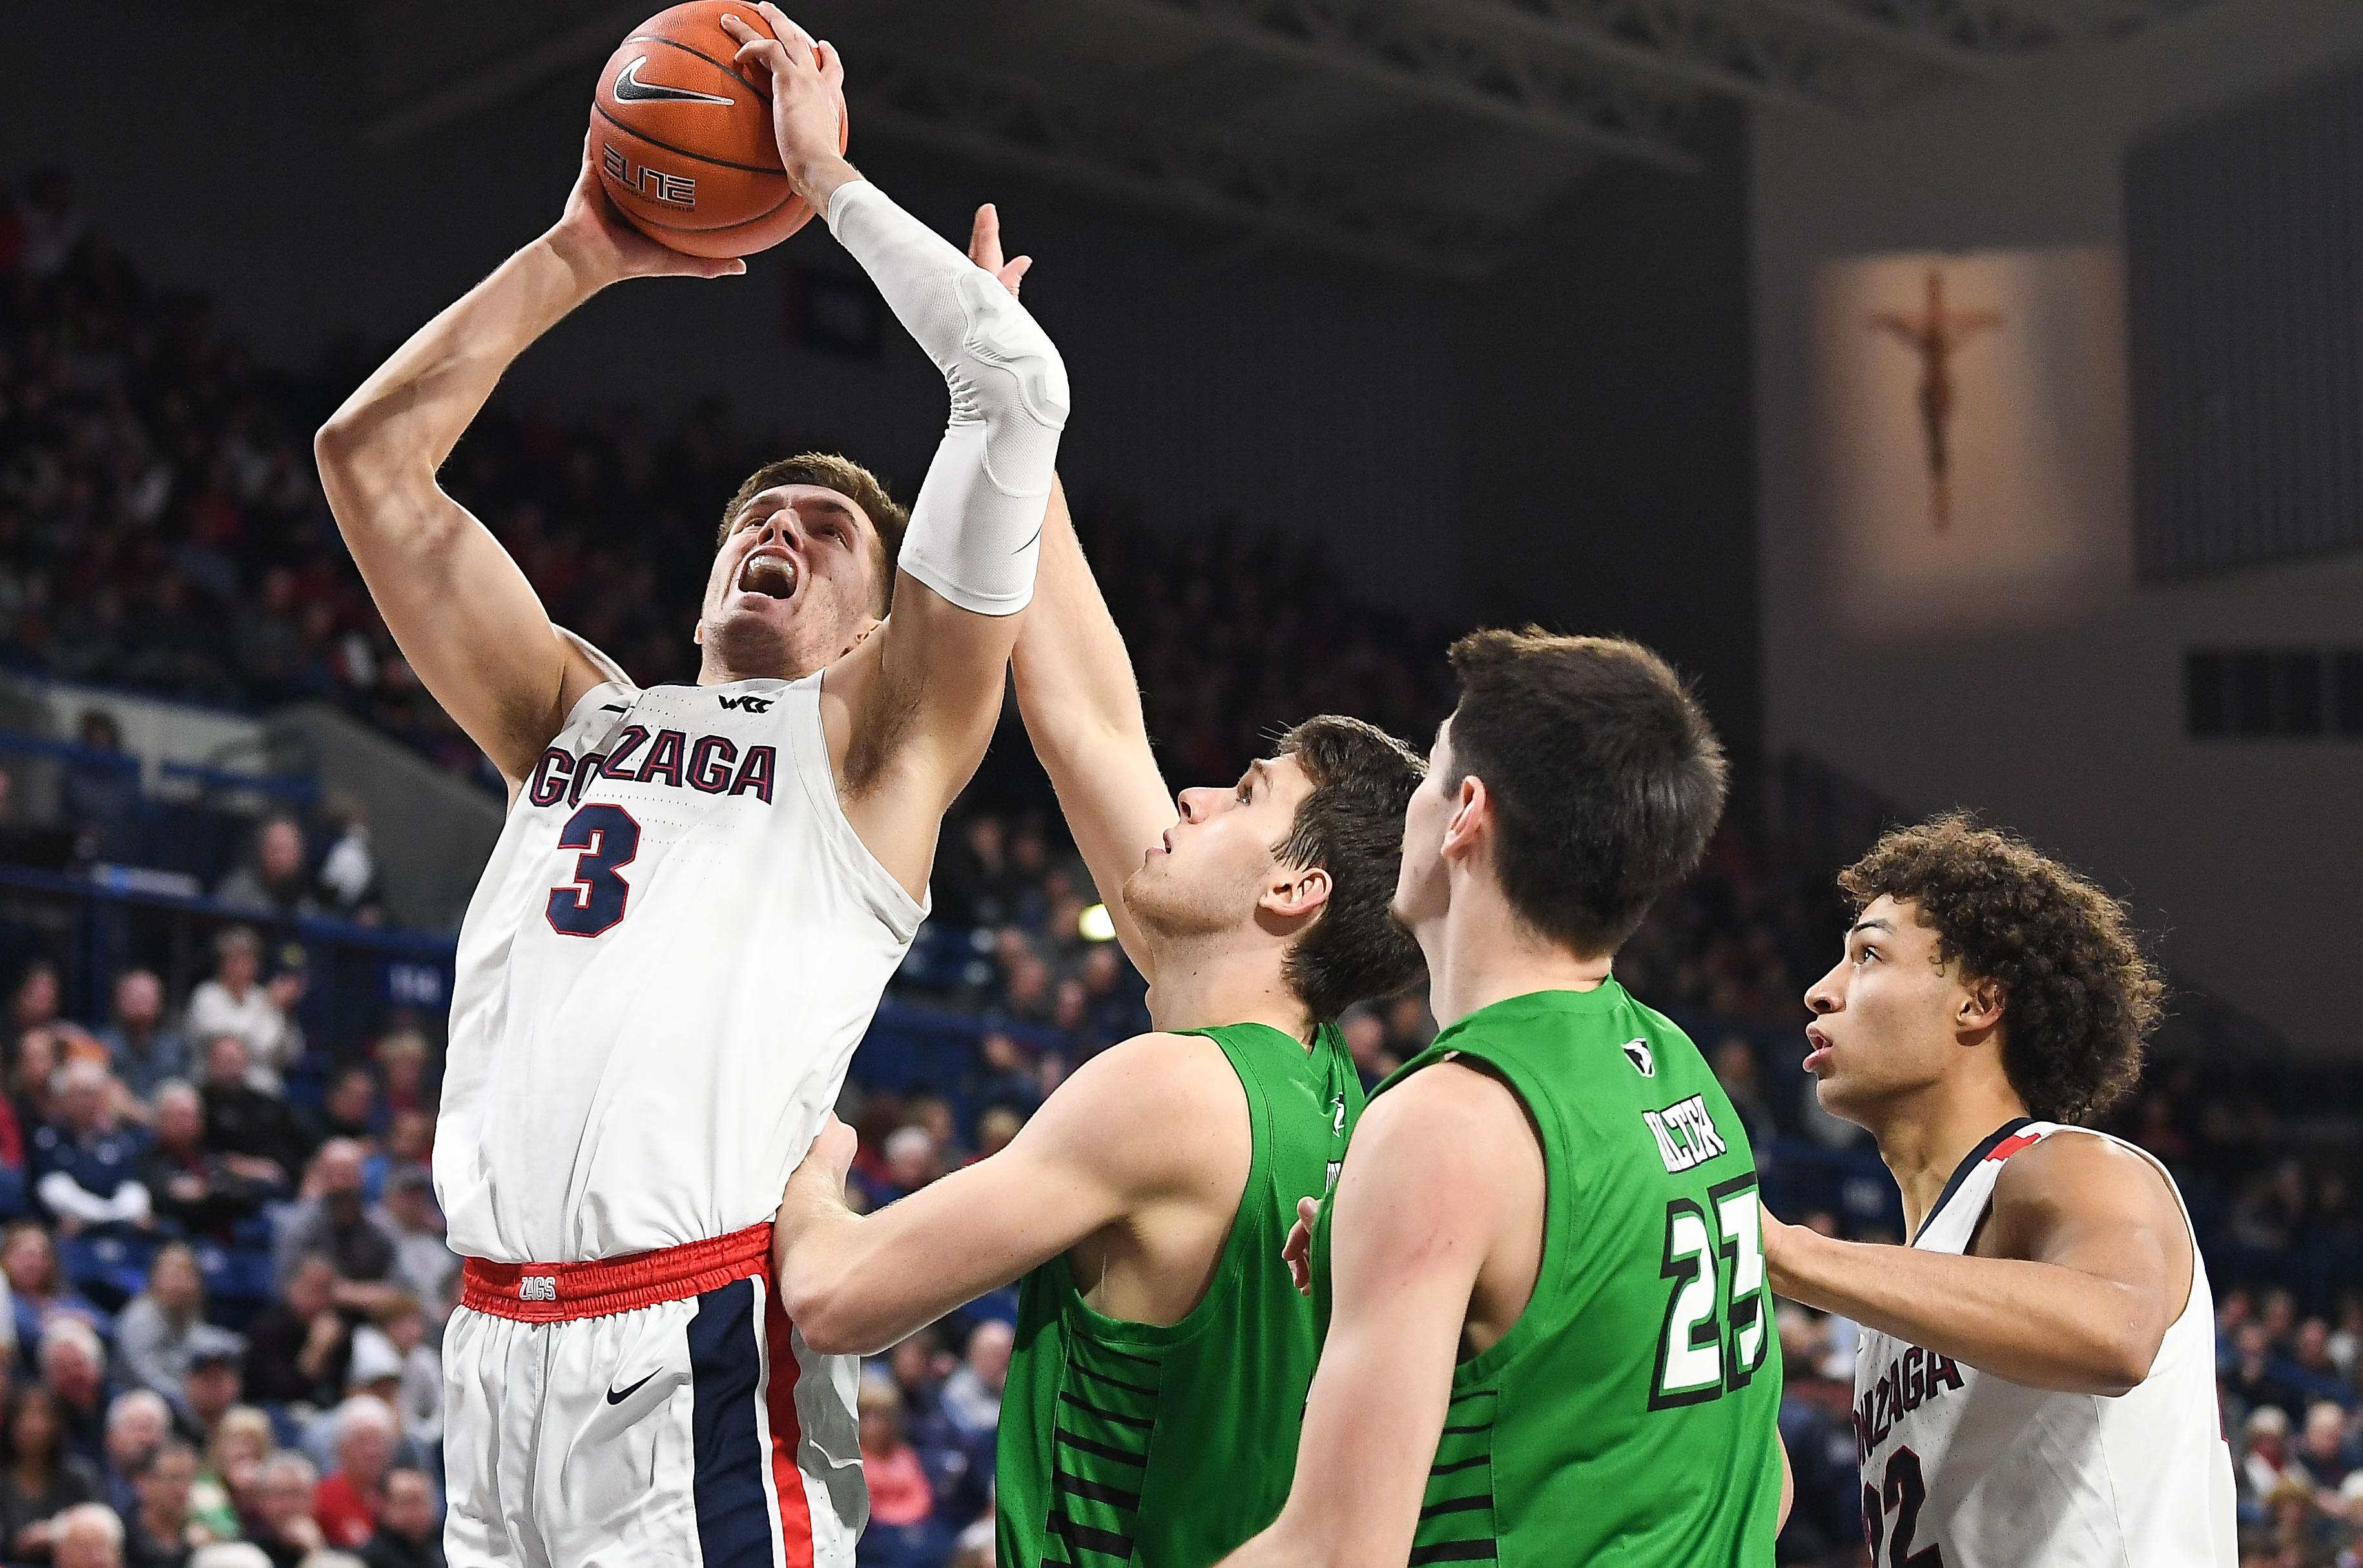 A Grip On Sports If You Are Looking For The Gonzaga Game